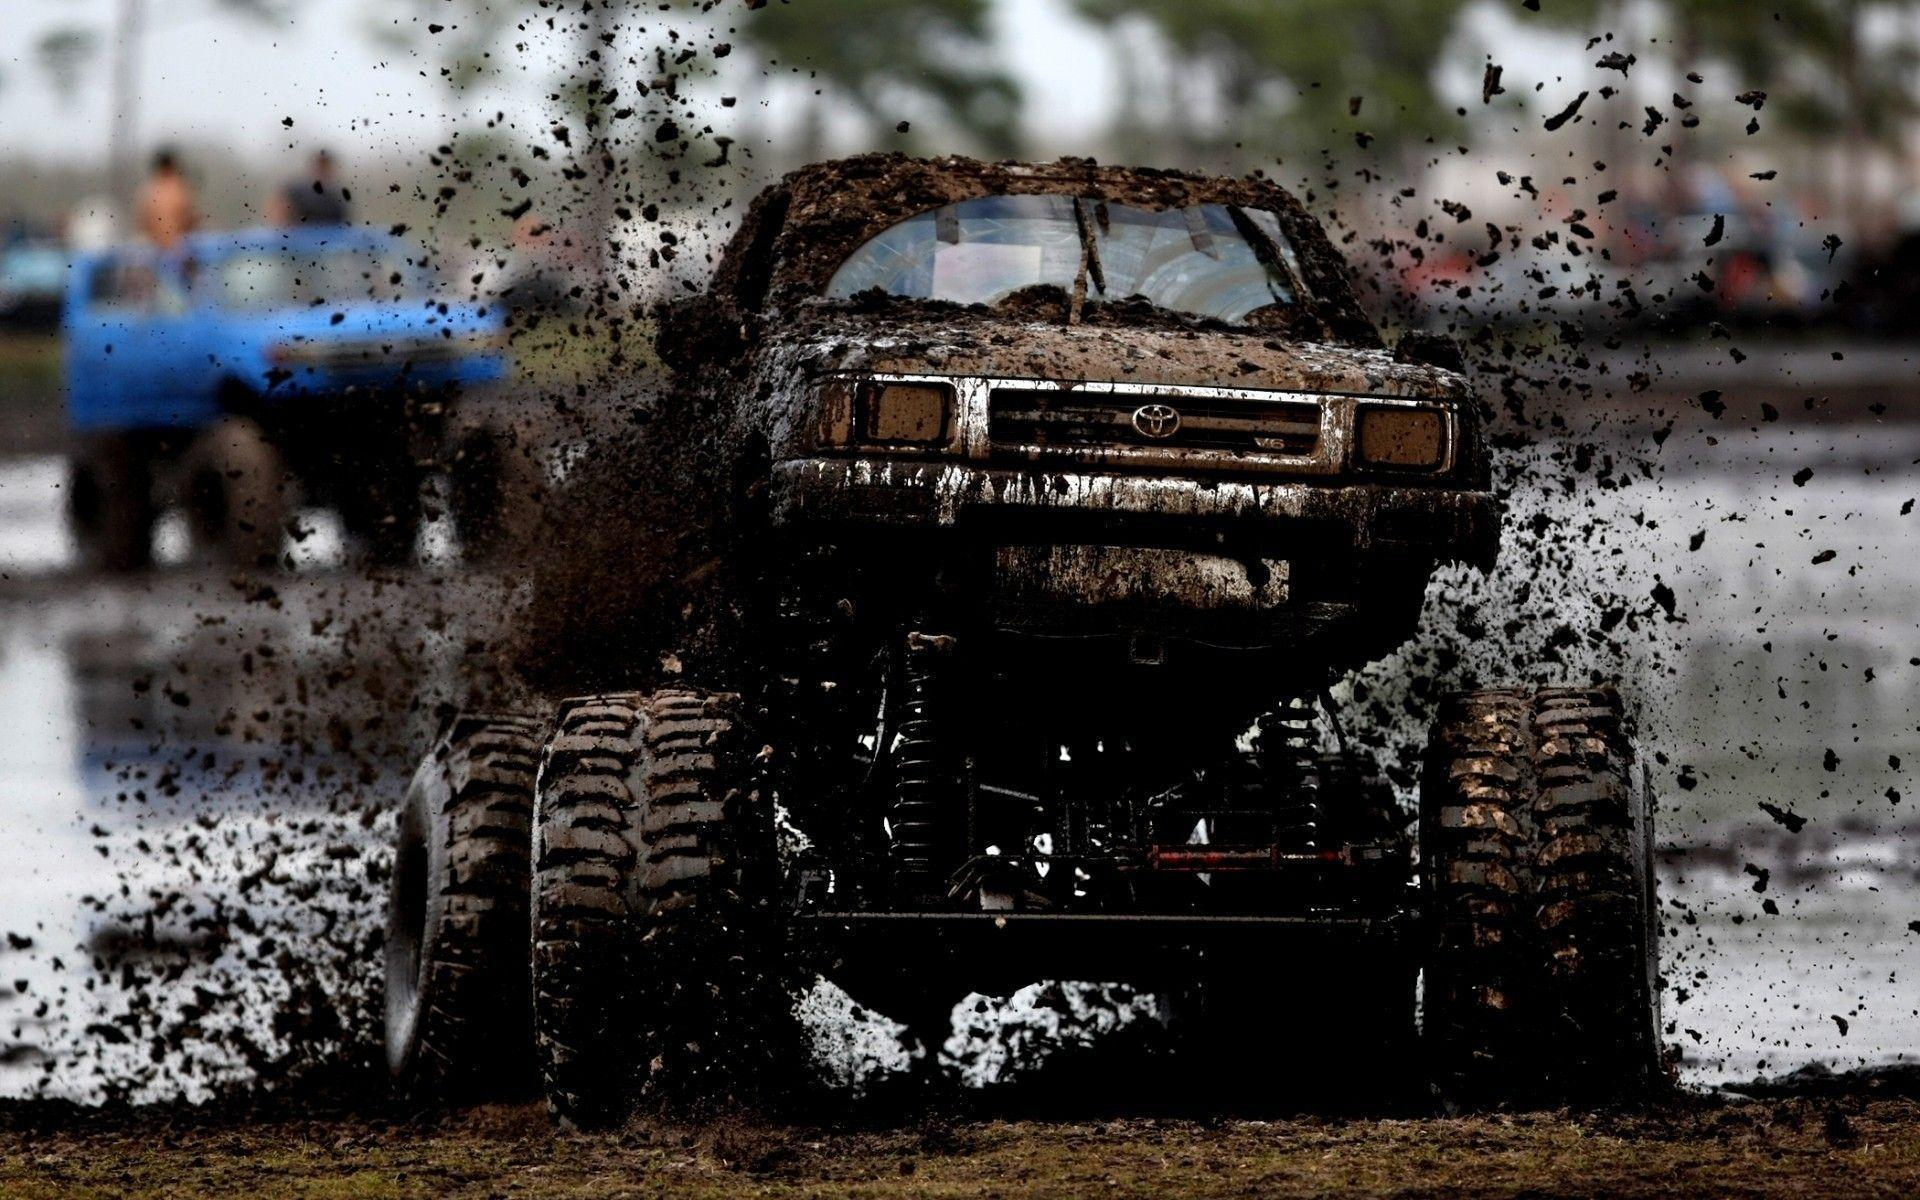 Toyota SUV covered in mud wallpapers and image